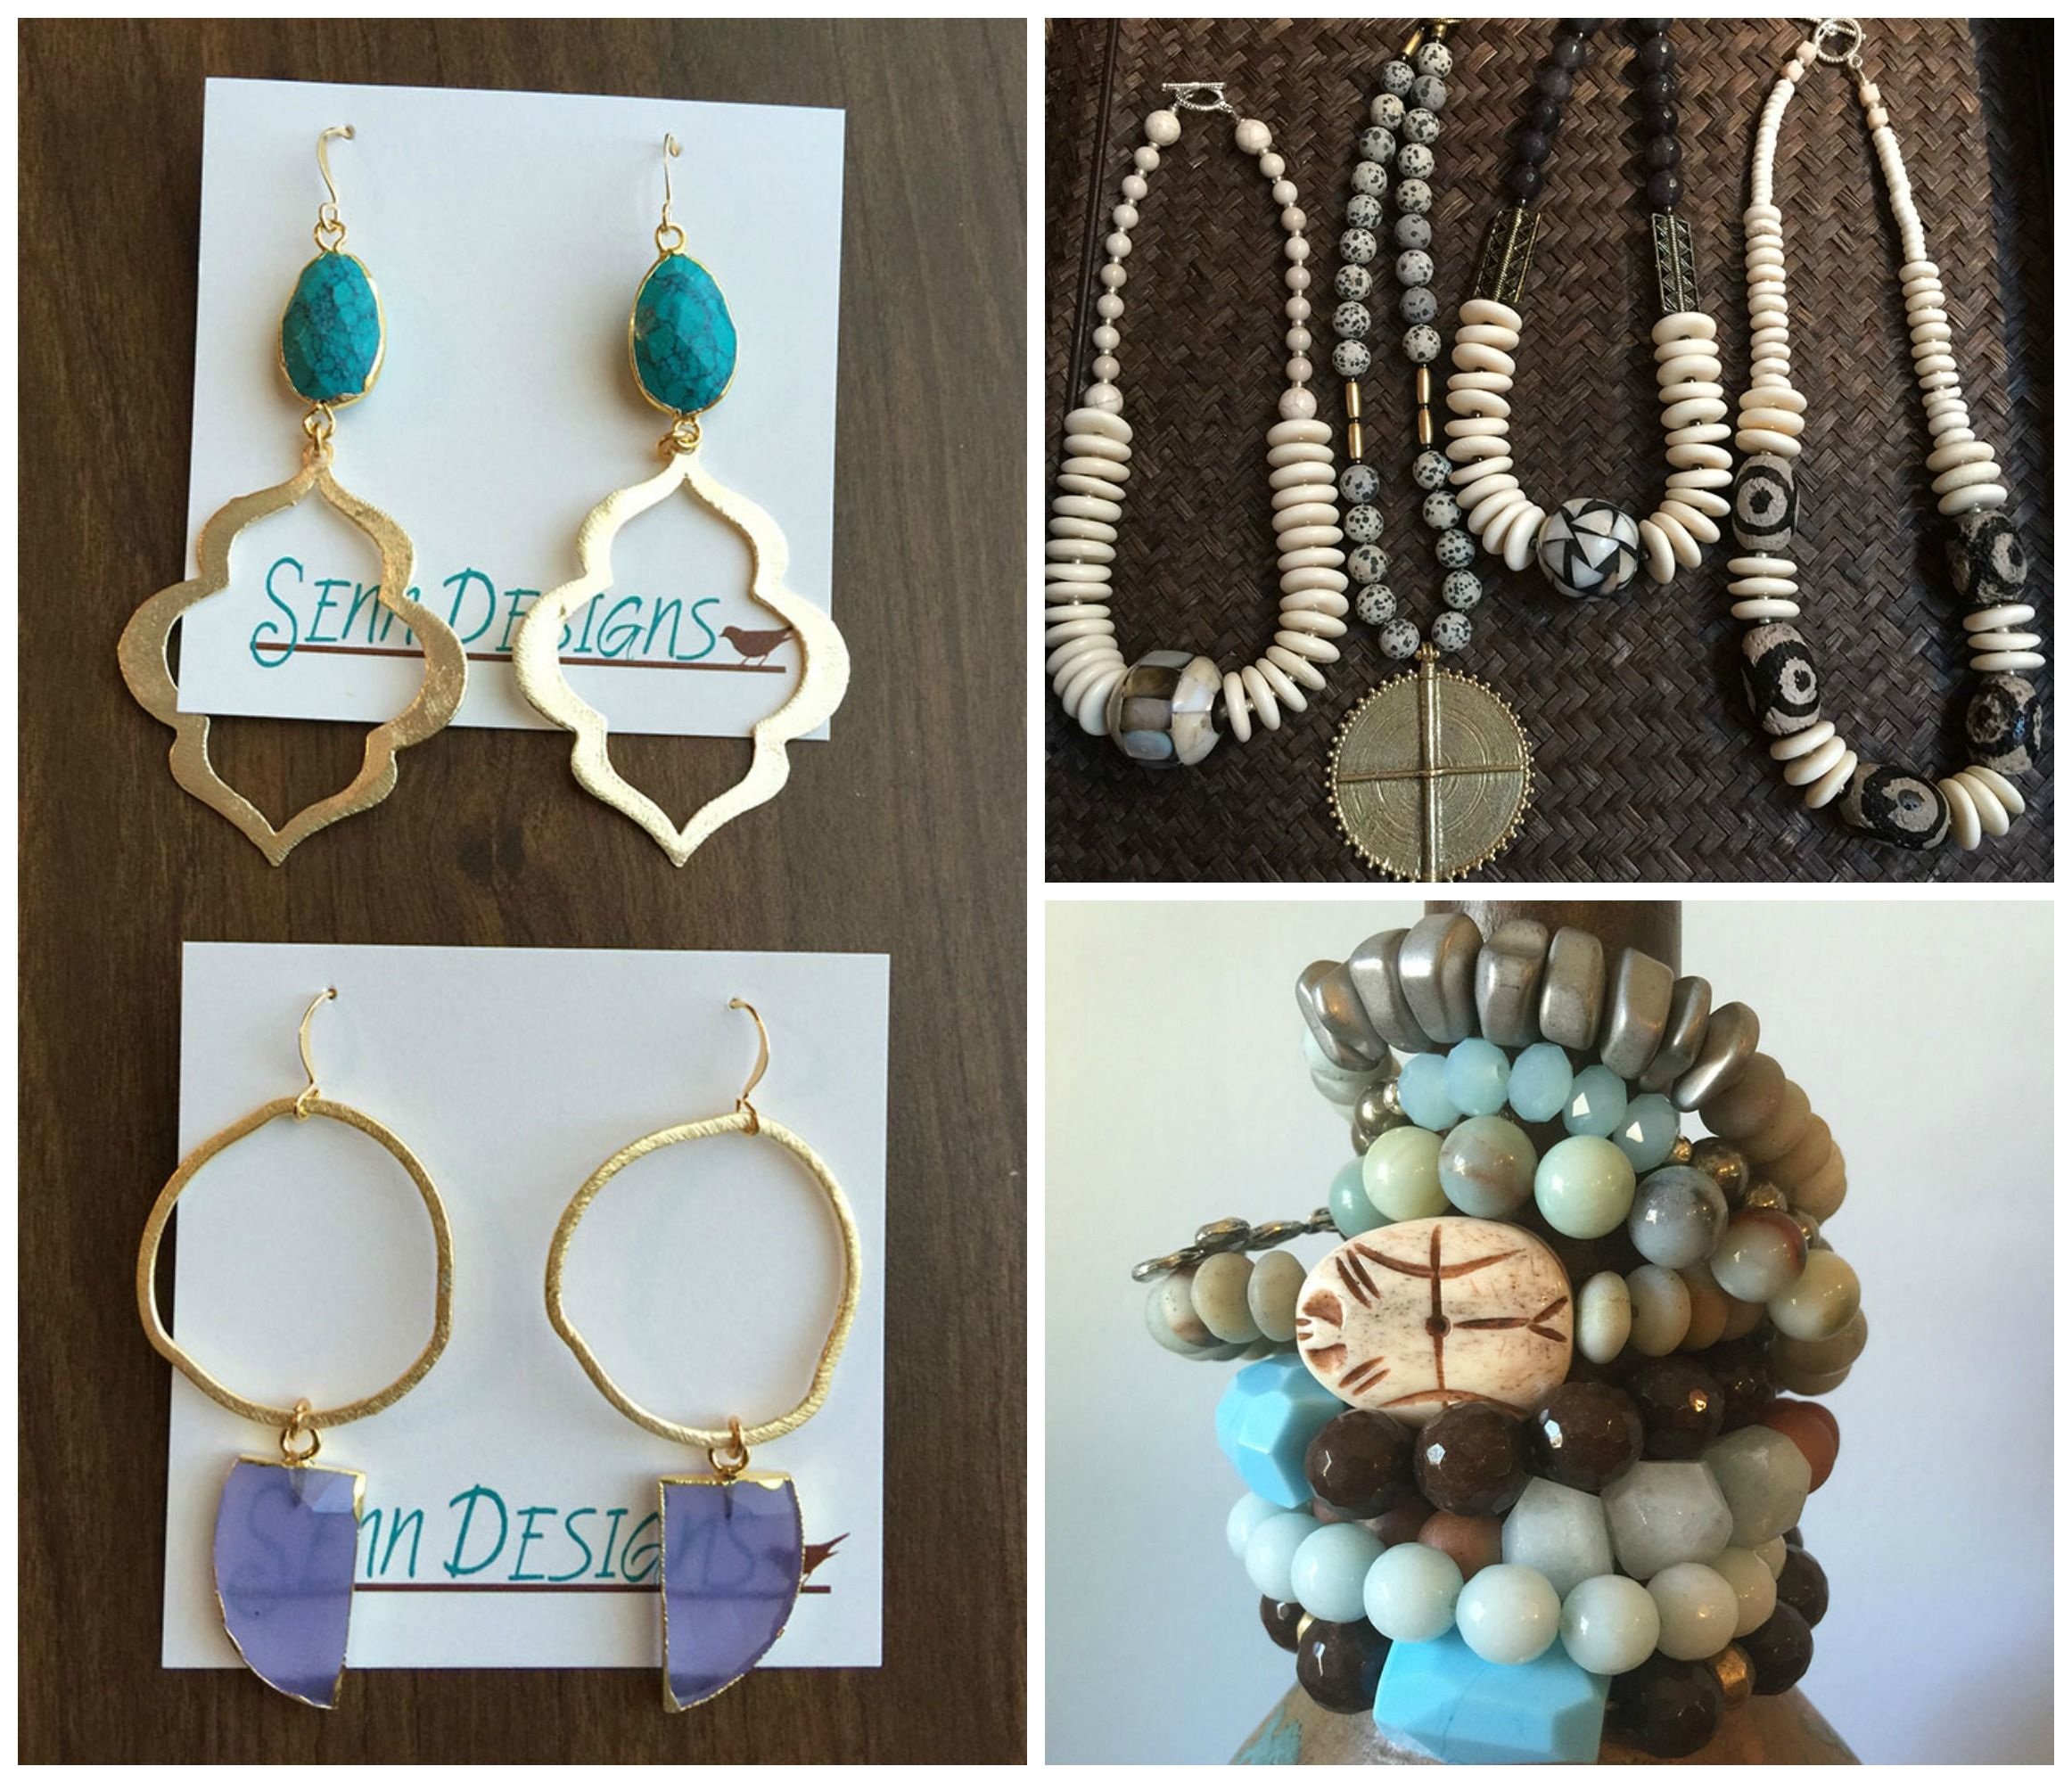 Are you a fan of handcrafted jewelry? Shop Senn Designs jewelry from